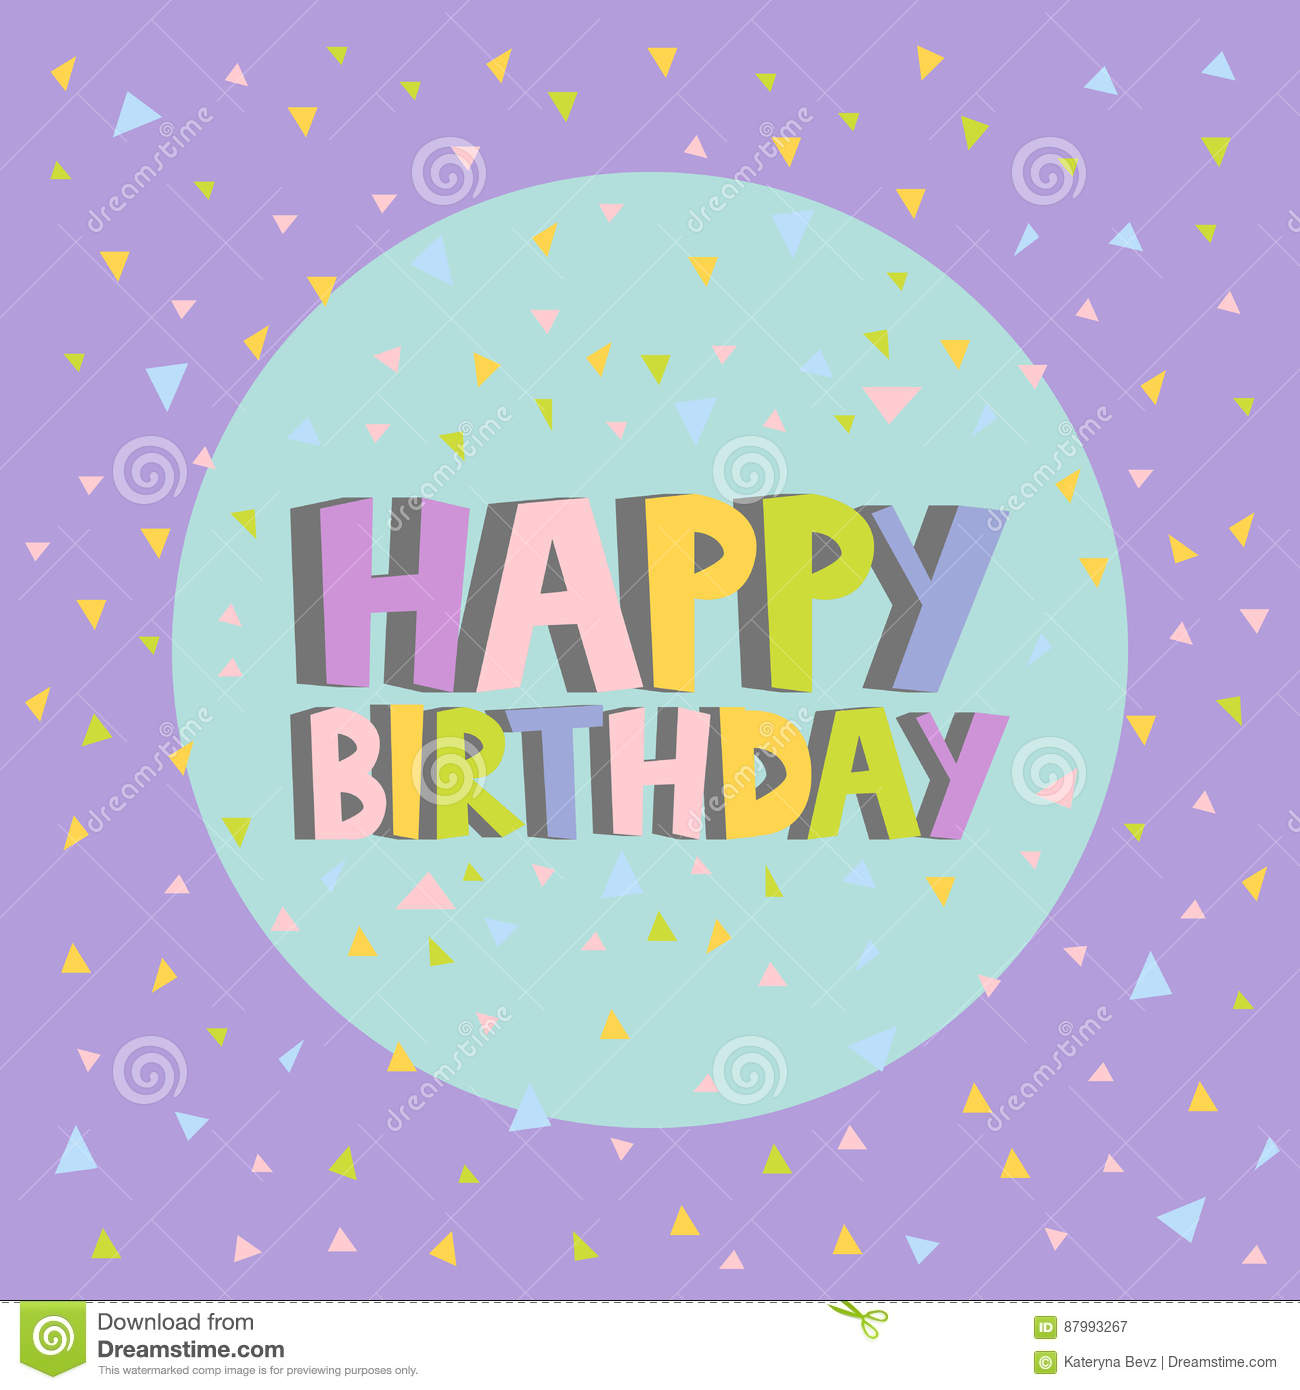 Happy Birthday Card Design Letters Confetti Background